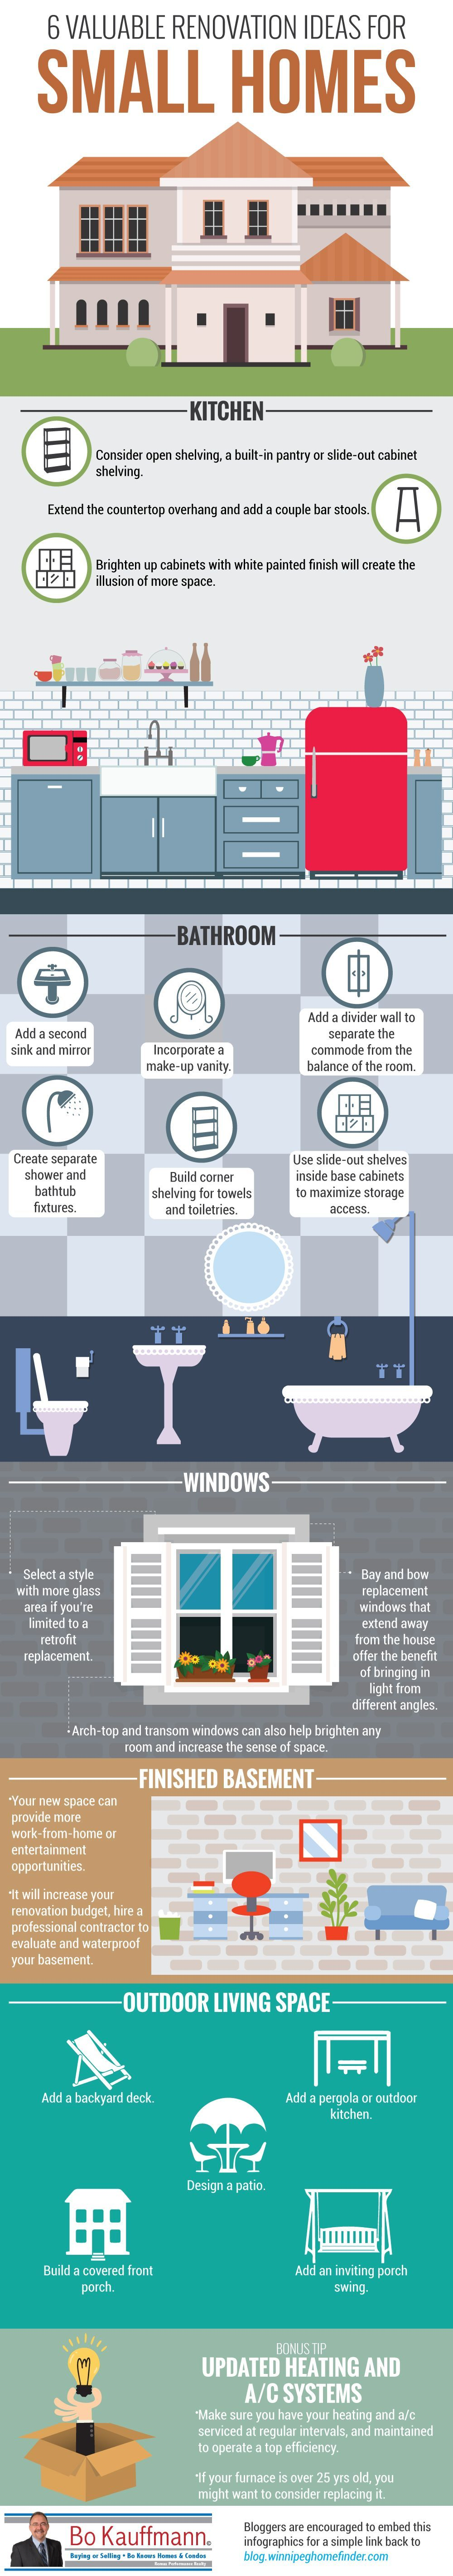 The Best Home Renovation Ideas For Small Homes - Infographic